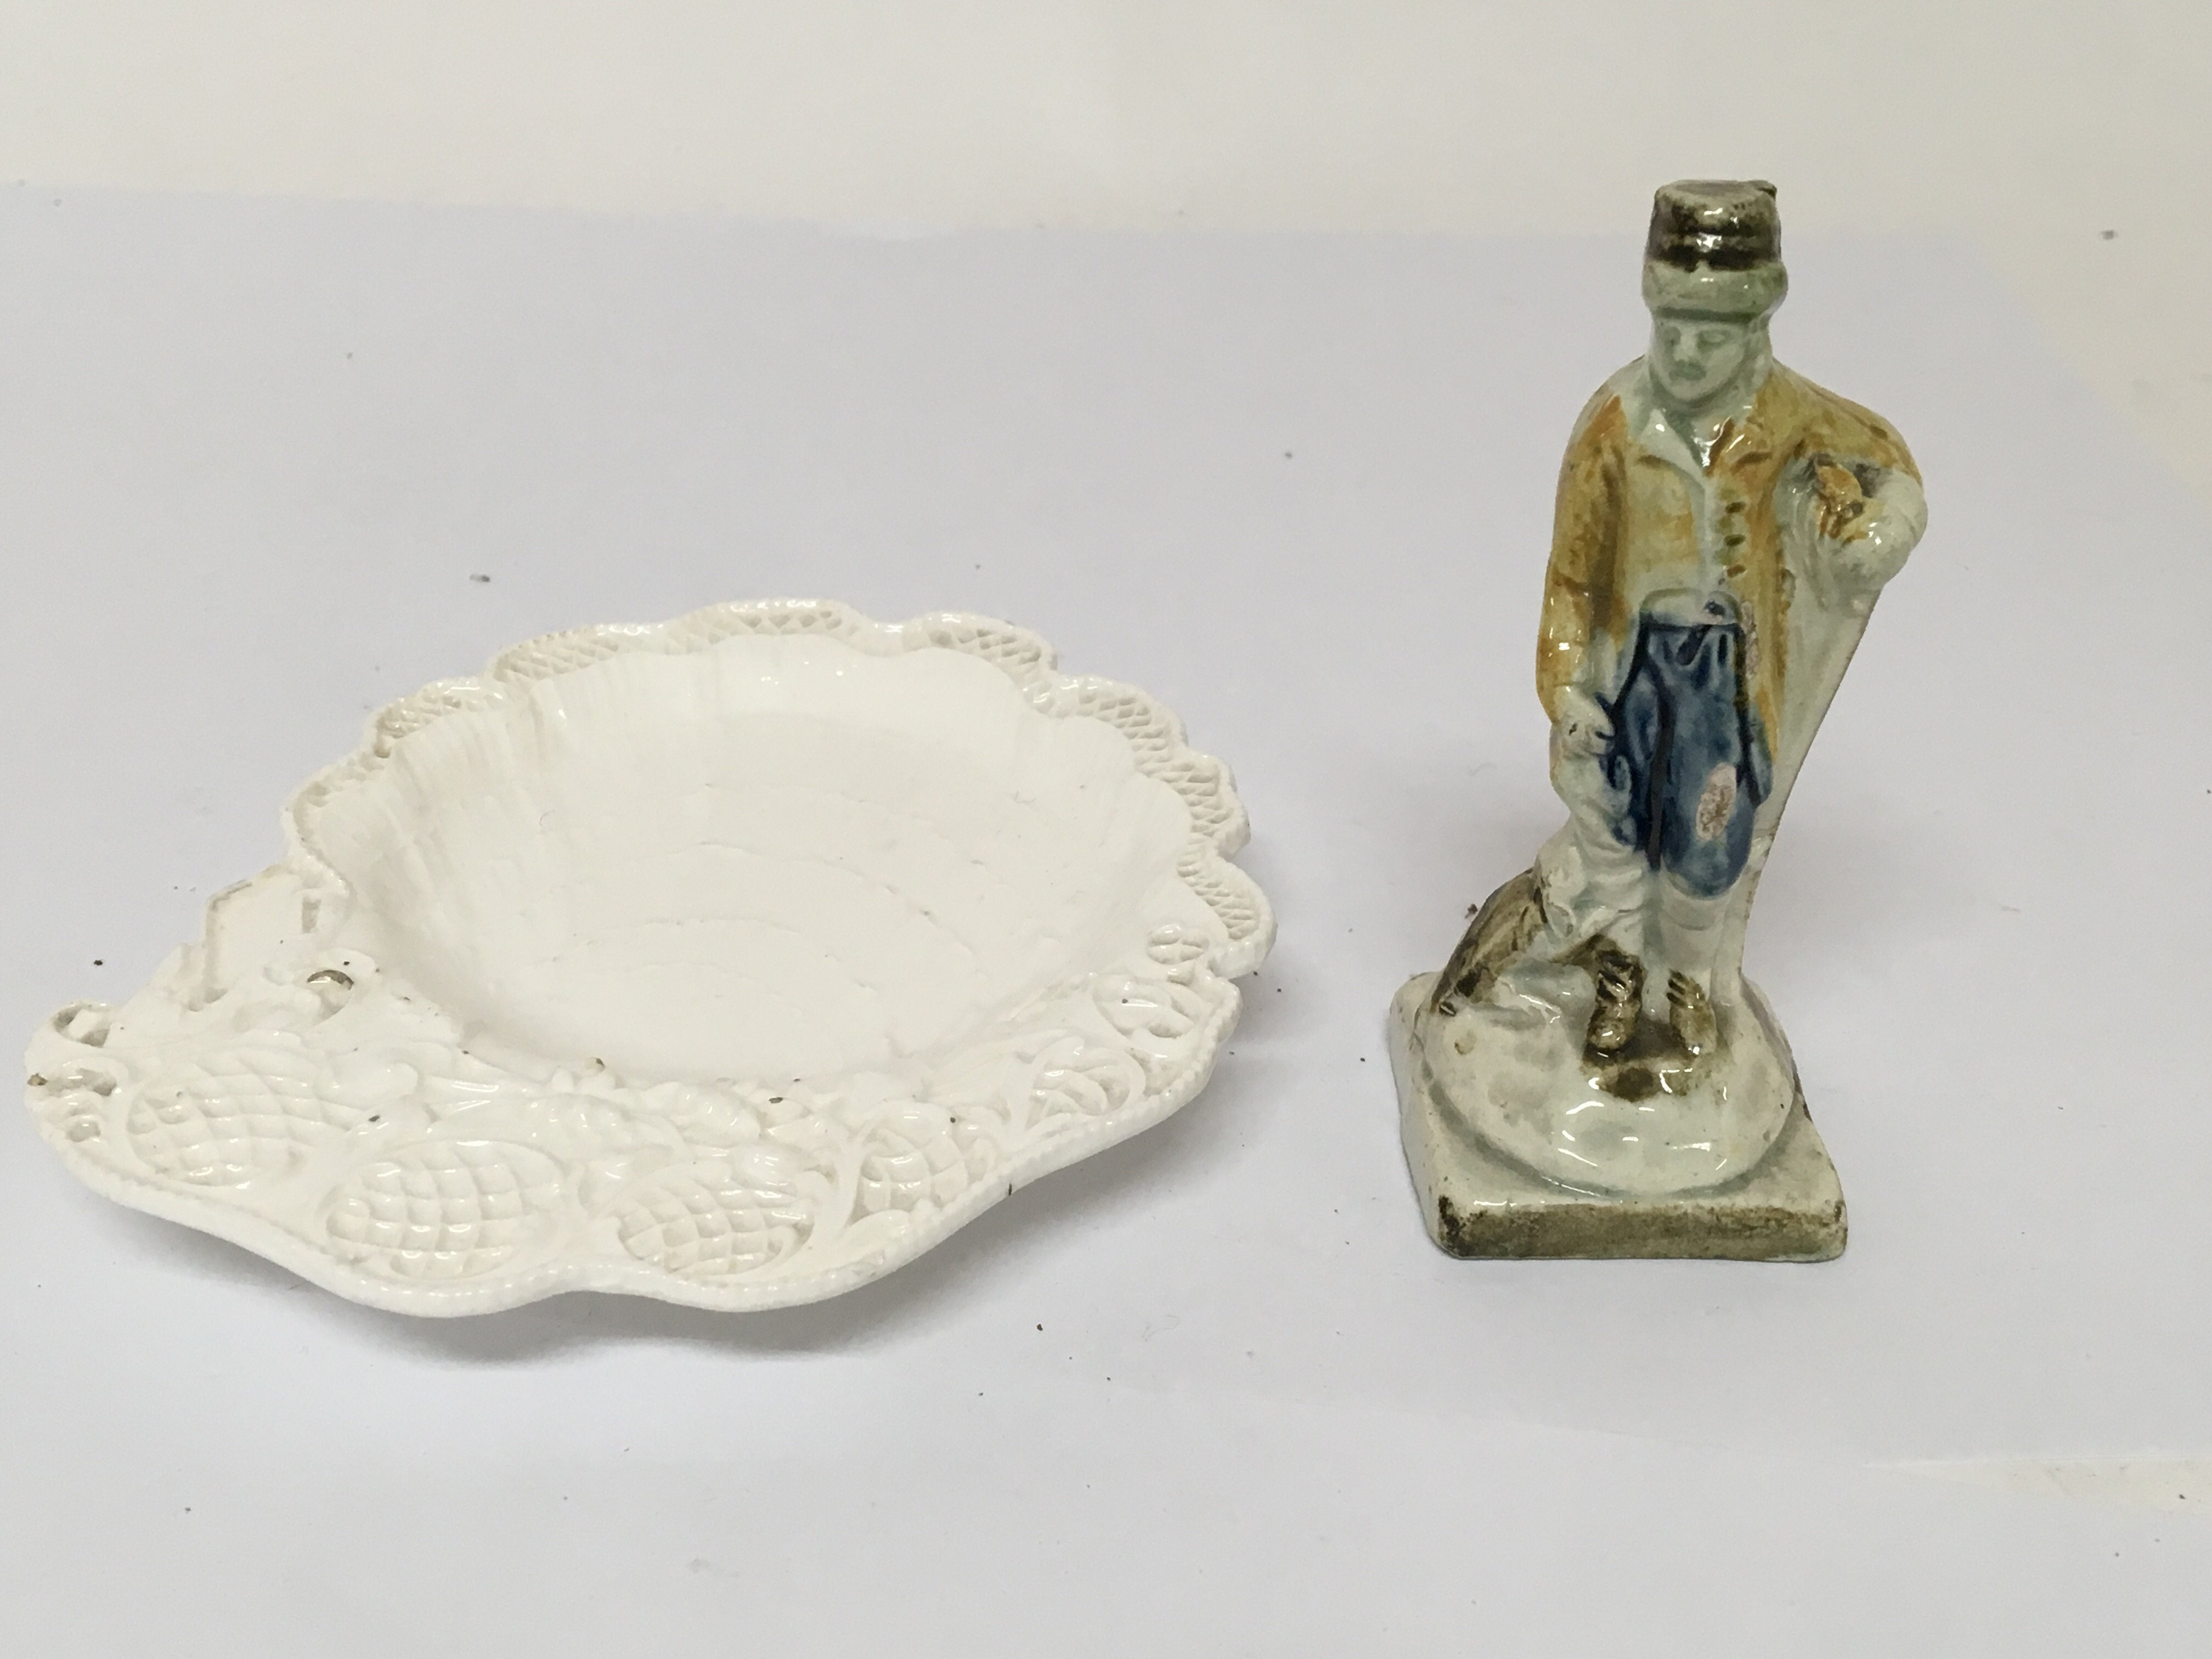 Lot 743 - An 18th Century English Pearl ware figure attribut